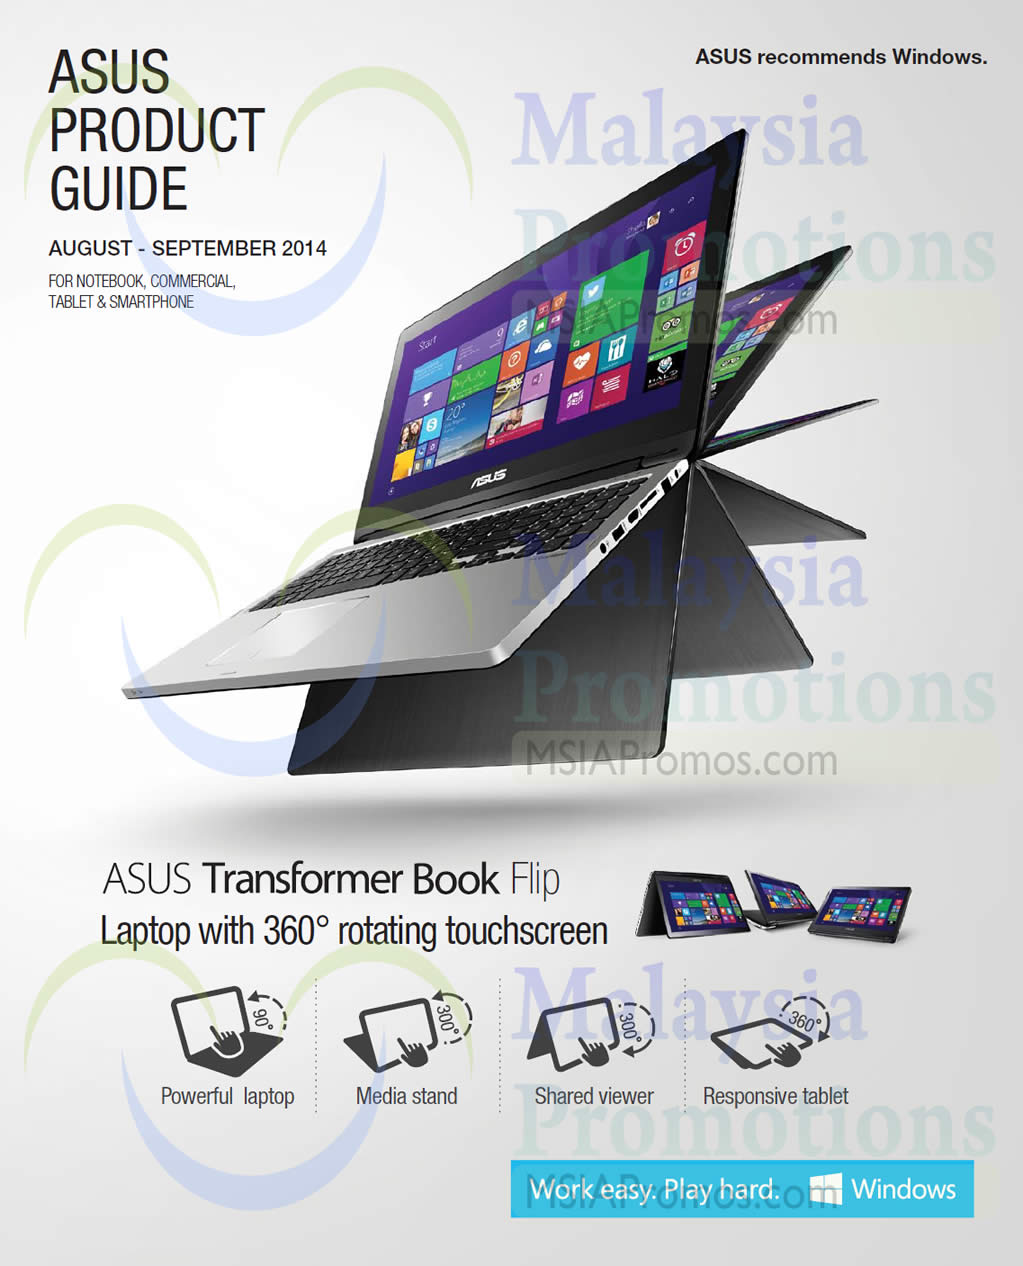 asus product guide august september asus notebooks smartphones rh msiapromos com asus product guide 2018 asus product guide 2017